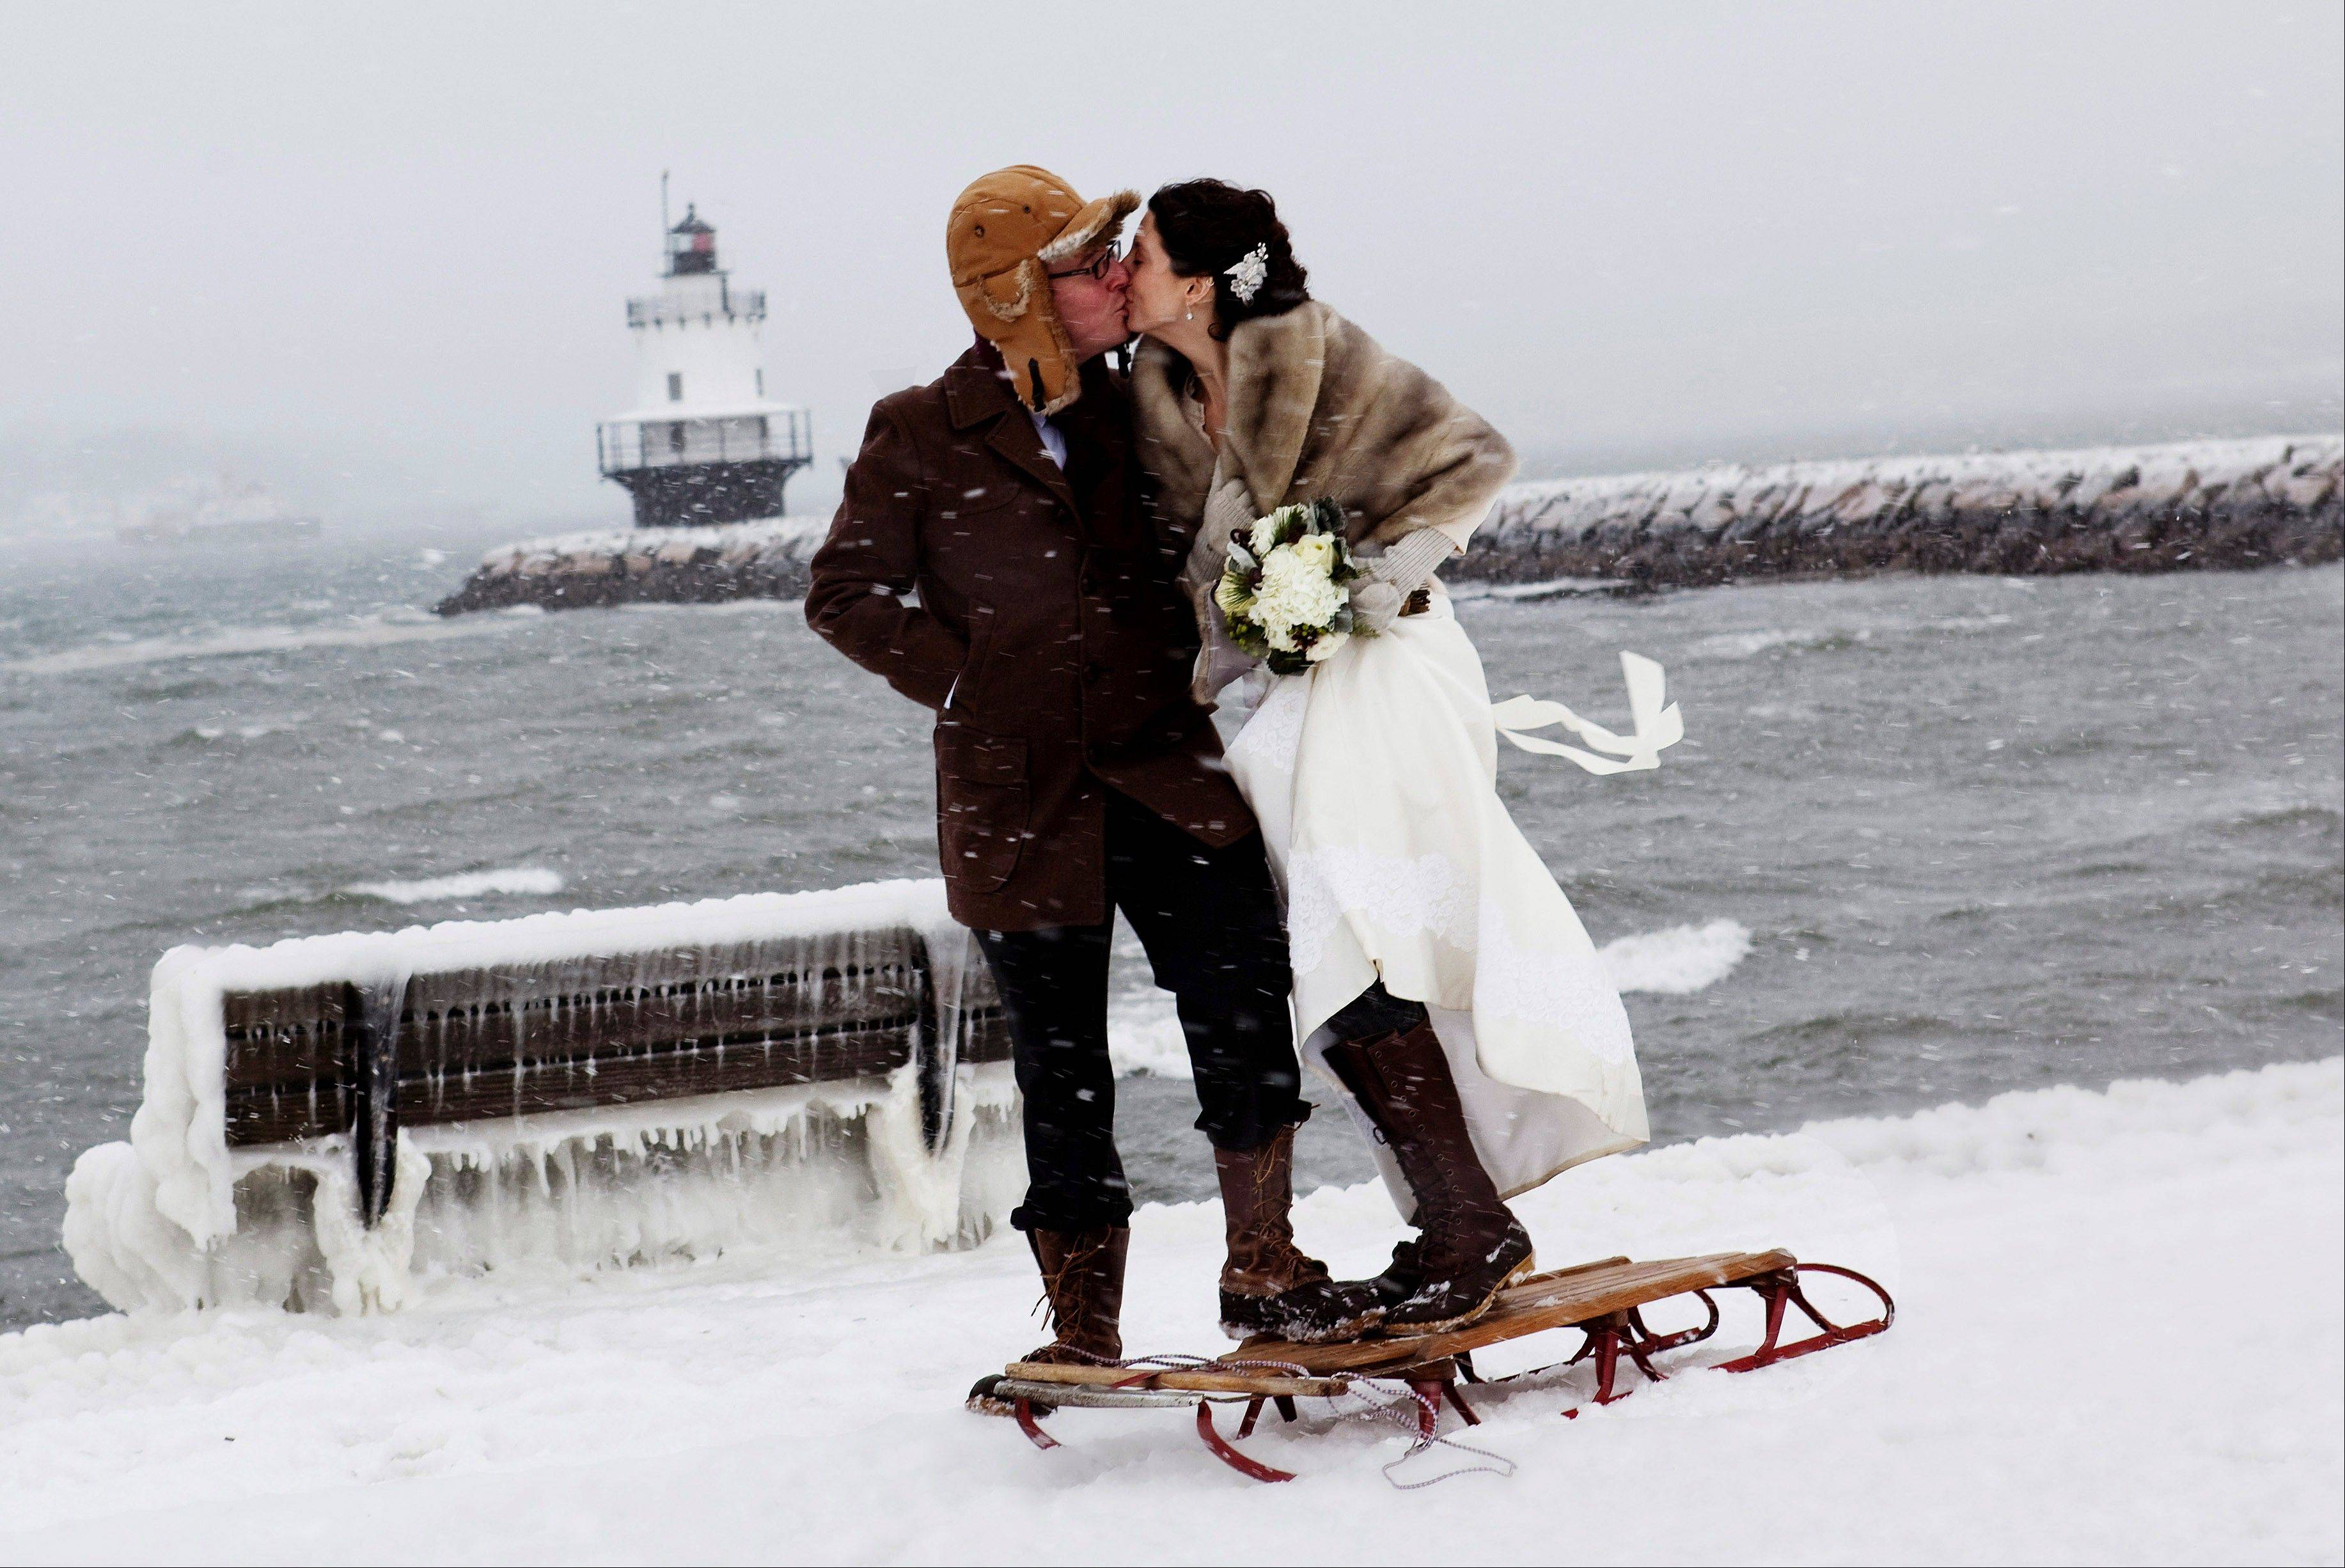 Greg Beal and Karen Willis Beal pose for photos outdoors after their wedding that went on despite a snowstorm in South Portland, Maine. Karen Willis Beal said her vision of a dream wedding included a snowstorm just like the one hit before her parents married in December 1970.